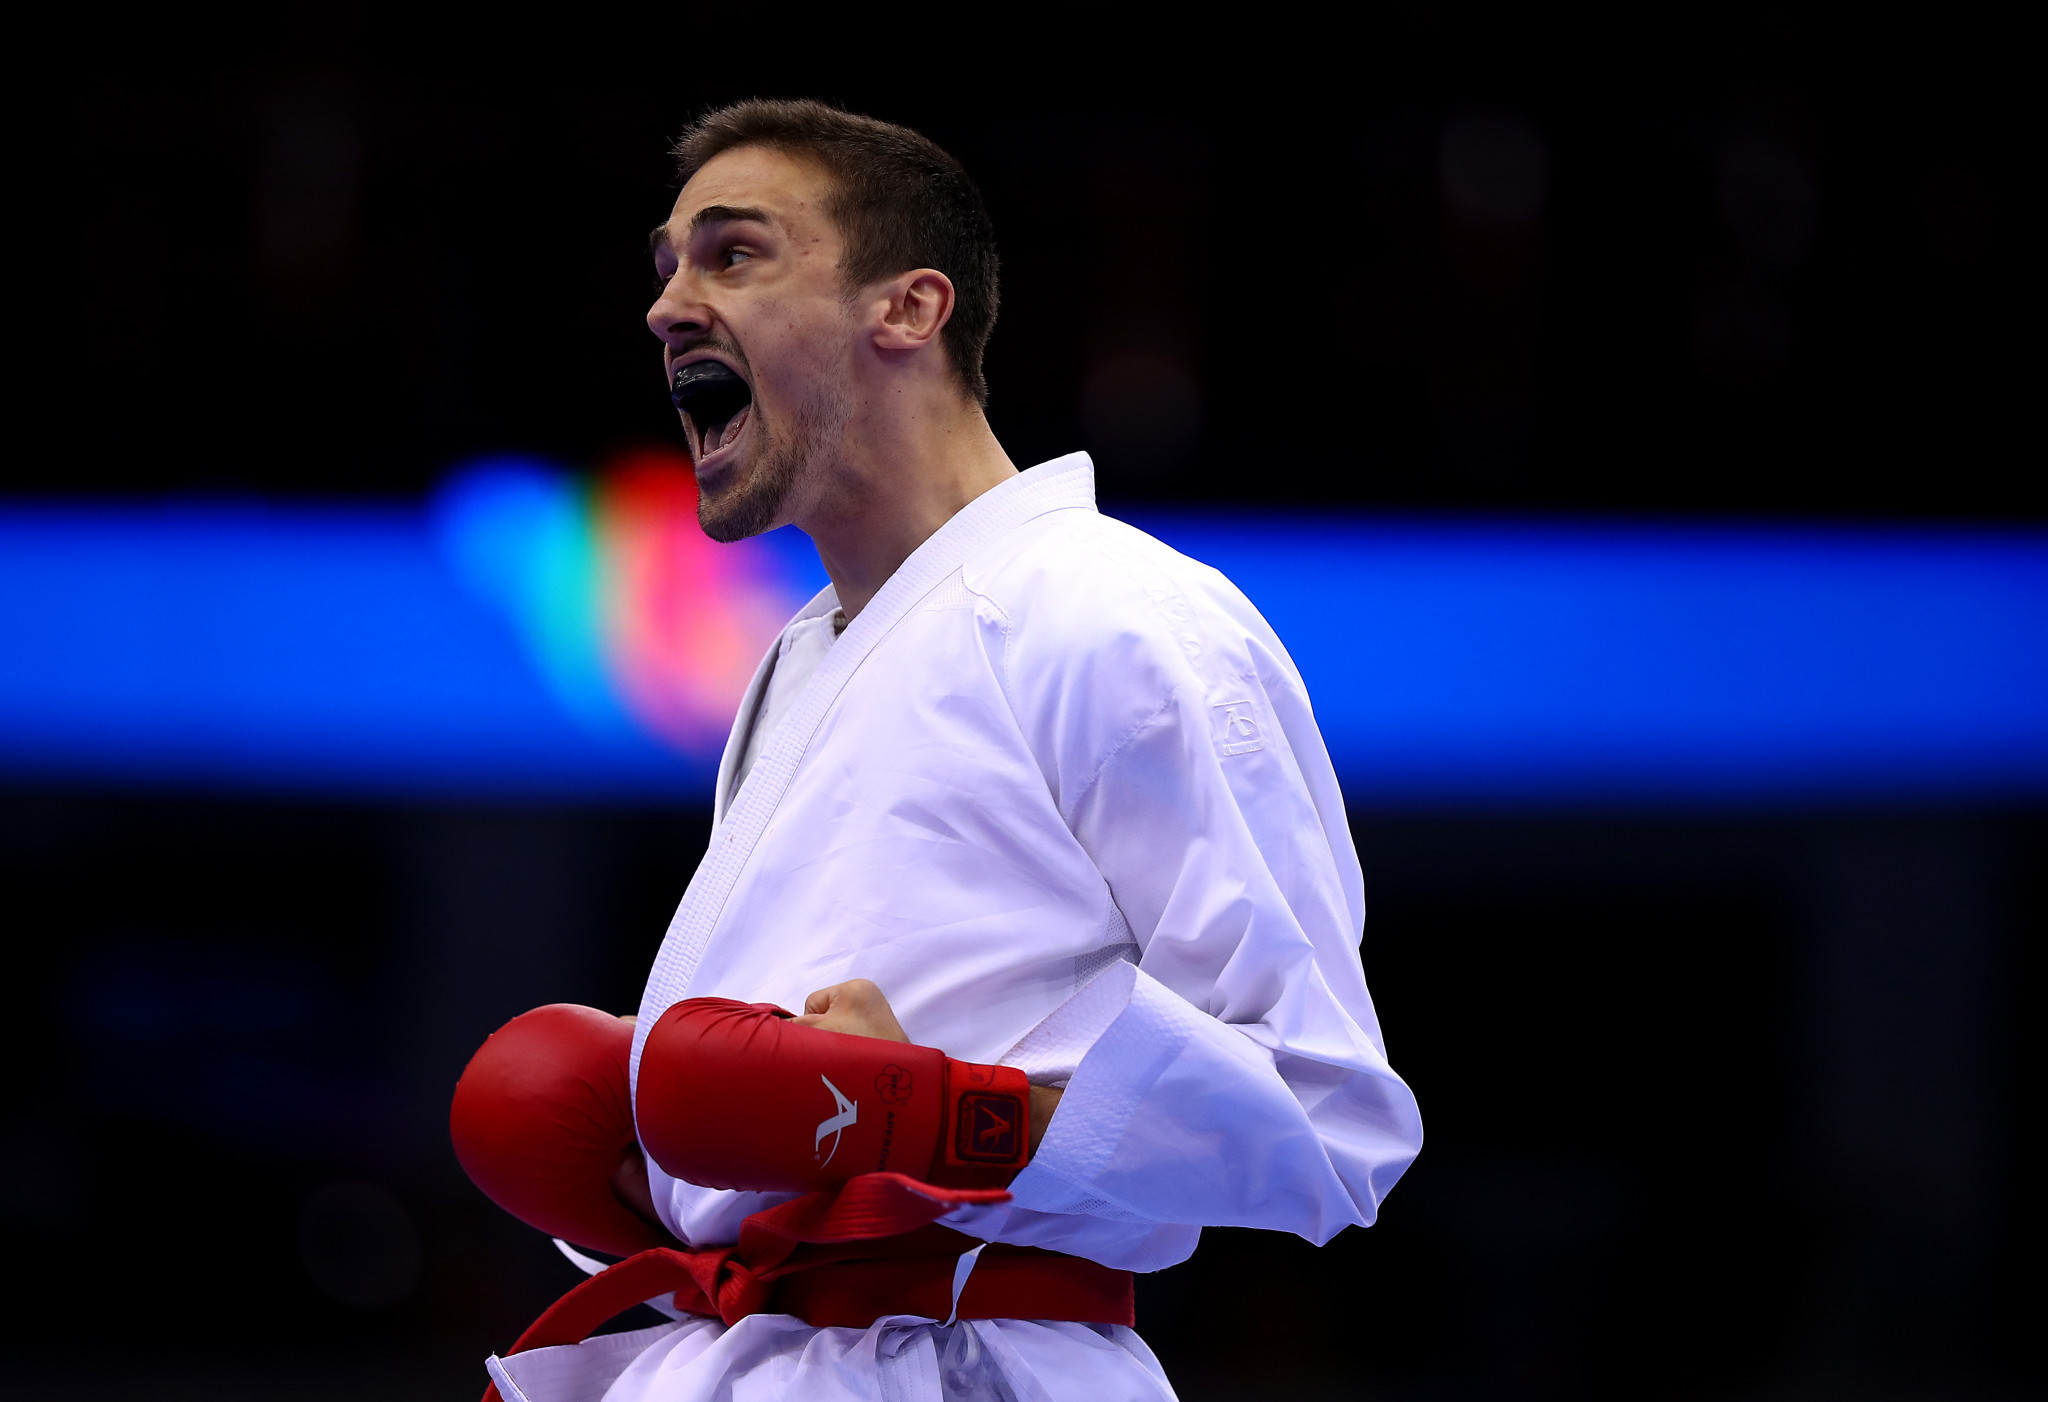 Ivan Kvesić will look to win the European Championships for the first time ©Getty Images